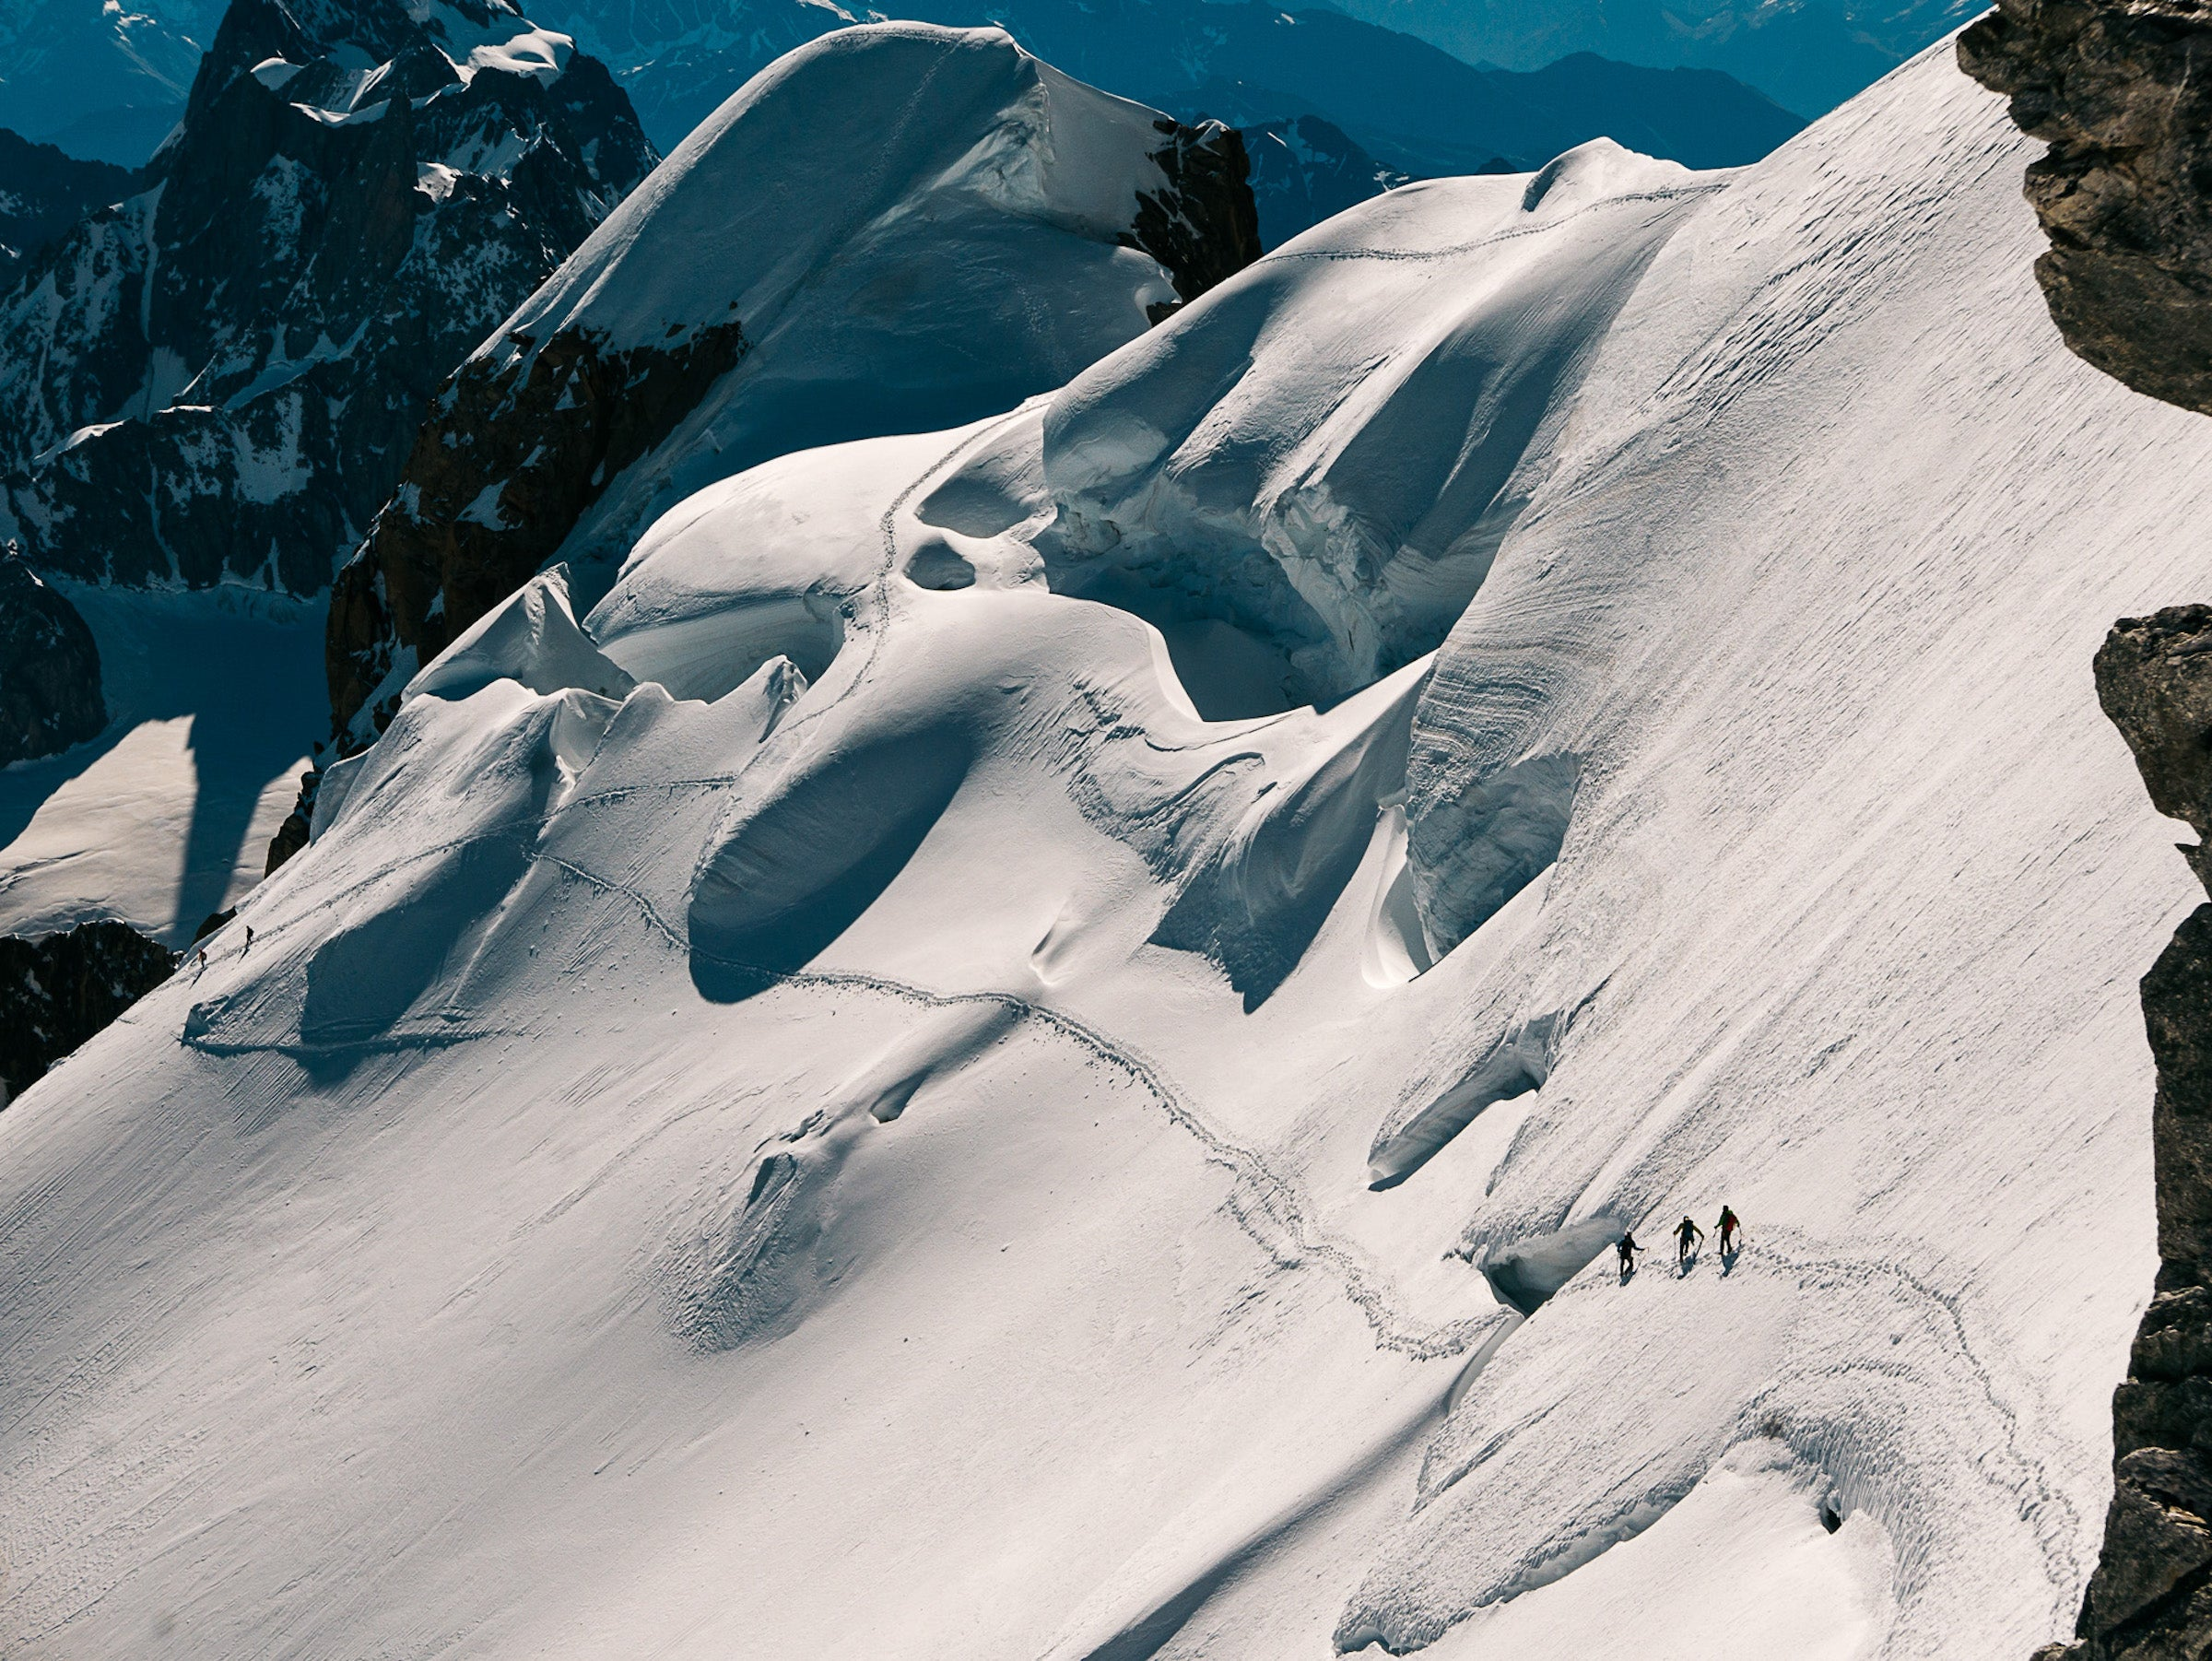 The Trois Monts route up Mont Blanc. Climbing routes like this one are changing as glaciers melt, crevasses widen, and ice towers collapse.